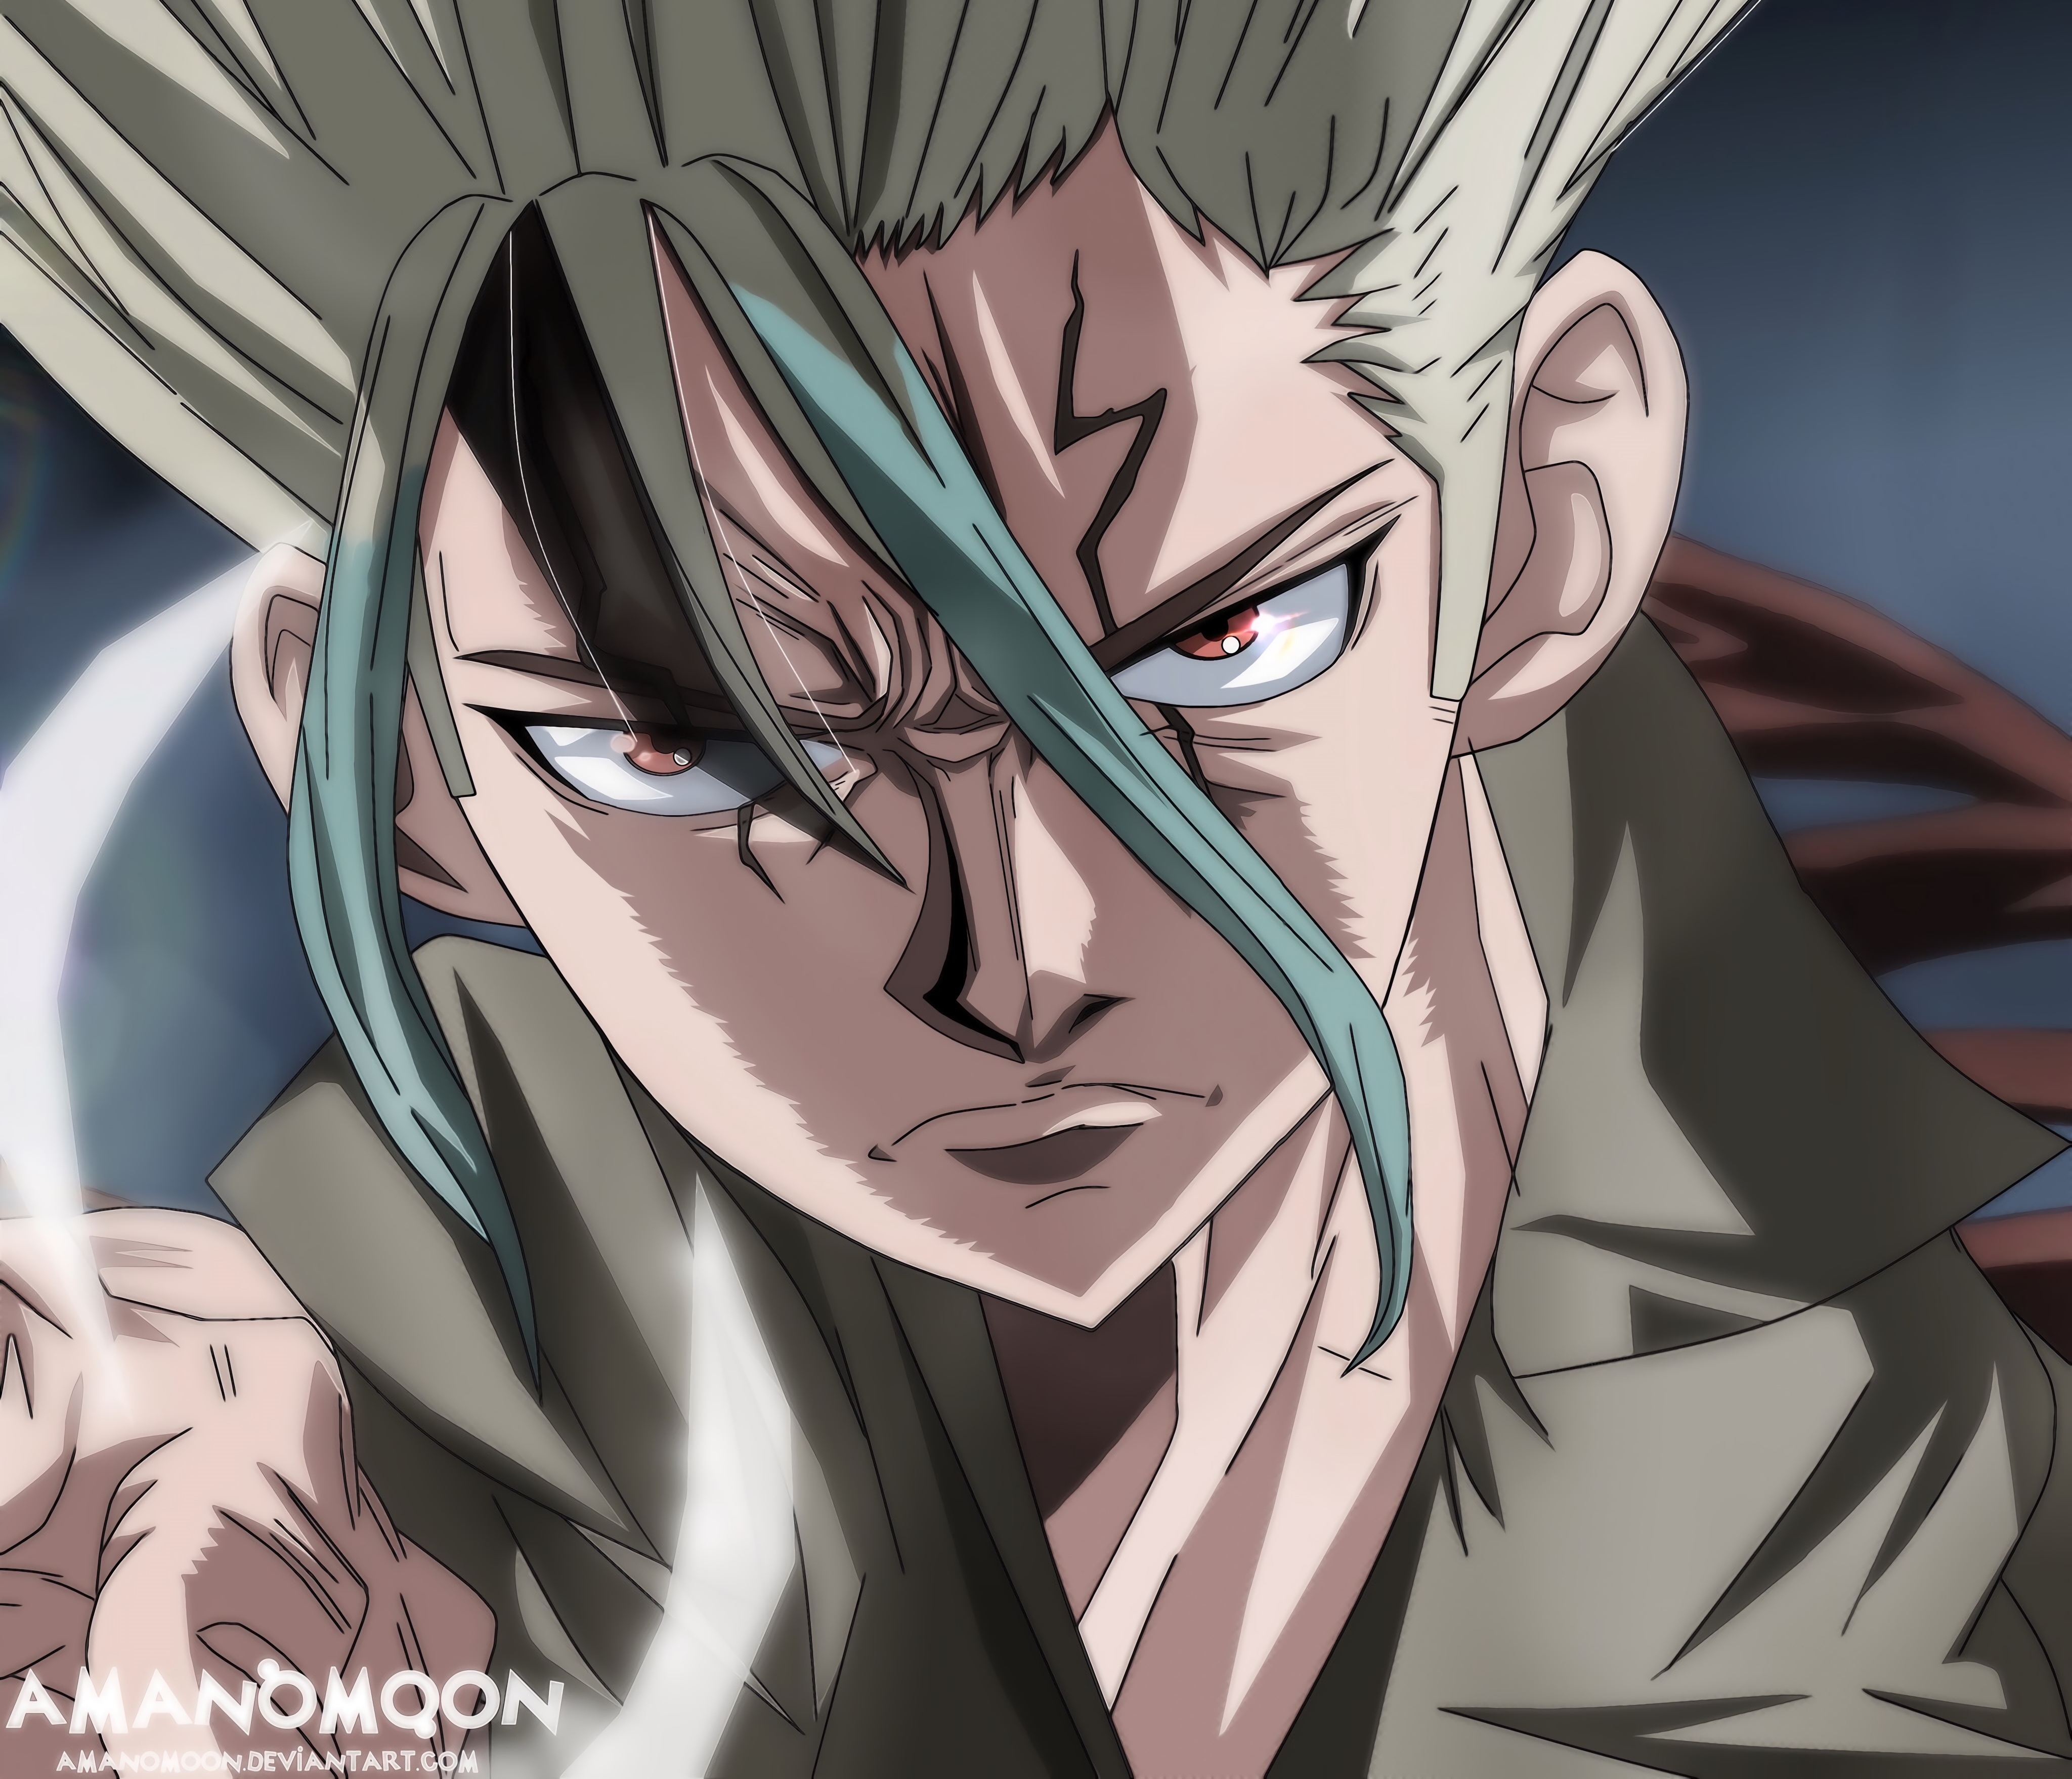 Dr. Stone 4k Ultra HD Wallpaper | Background Image | 4096x3516 | ID:1015783 - Wallpaper Abyss